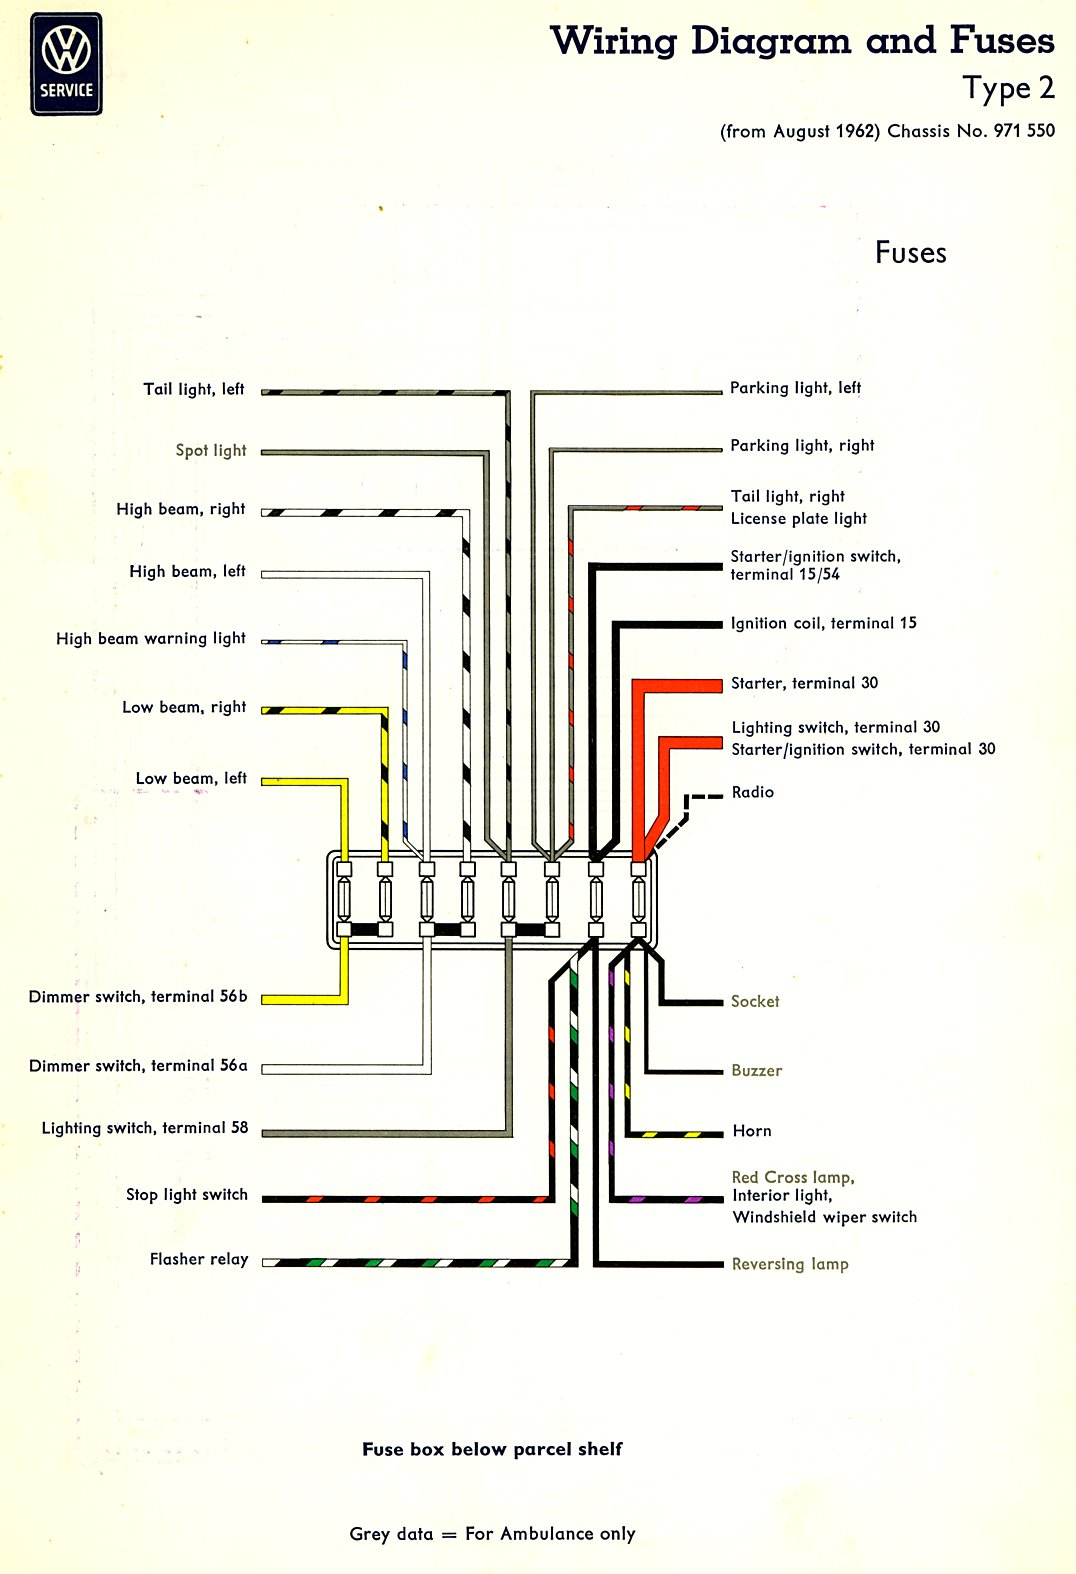 bus_63_fuses thesamba com type 2 wiring diagrams 1978 vw bus fuse box diagram at metegol.co